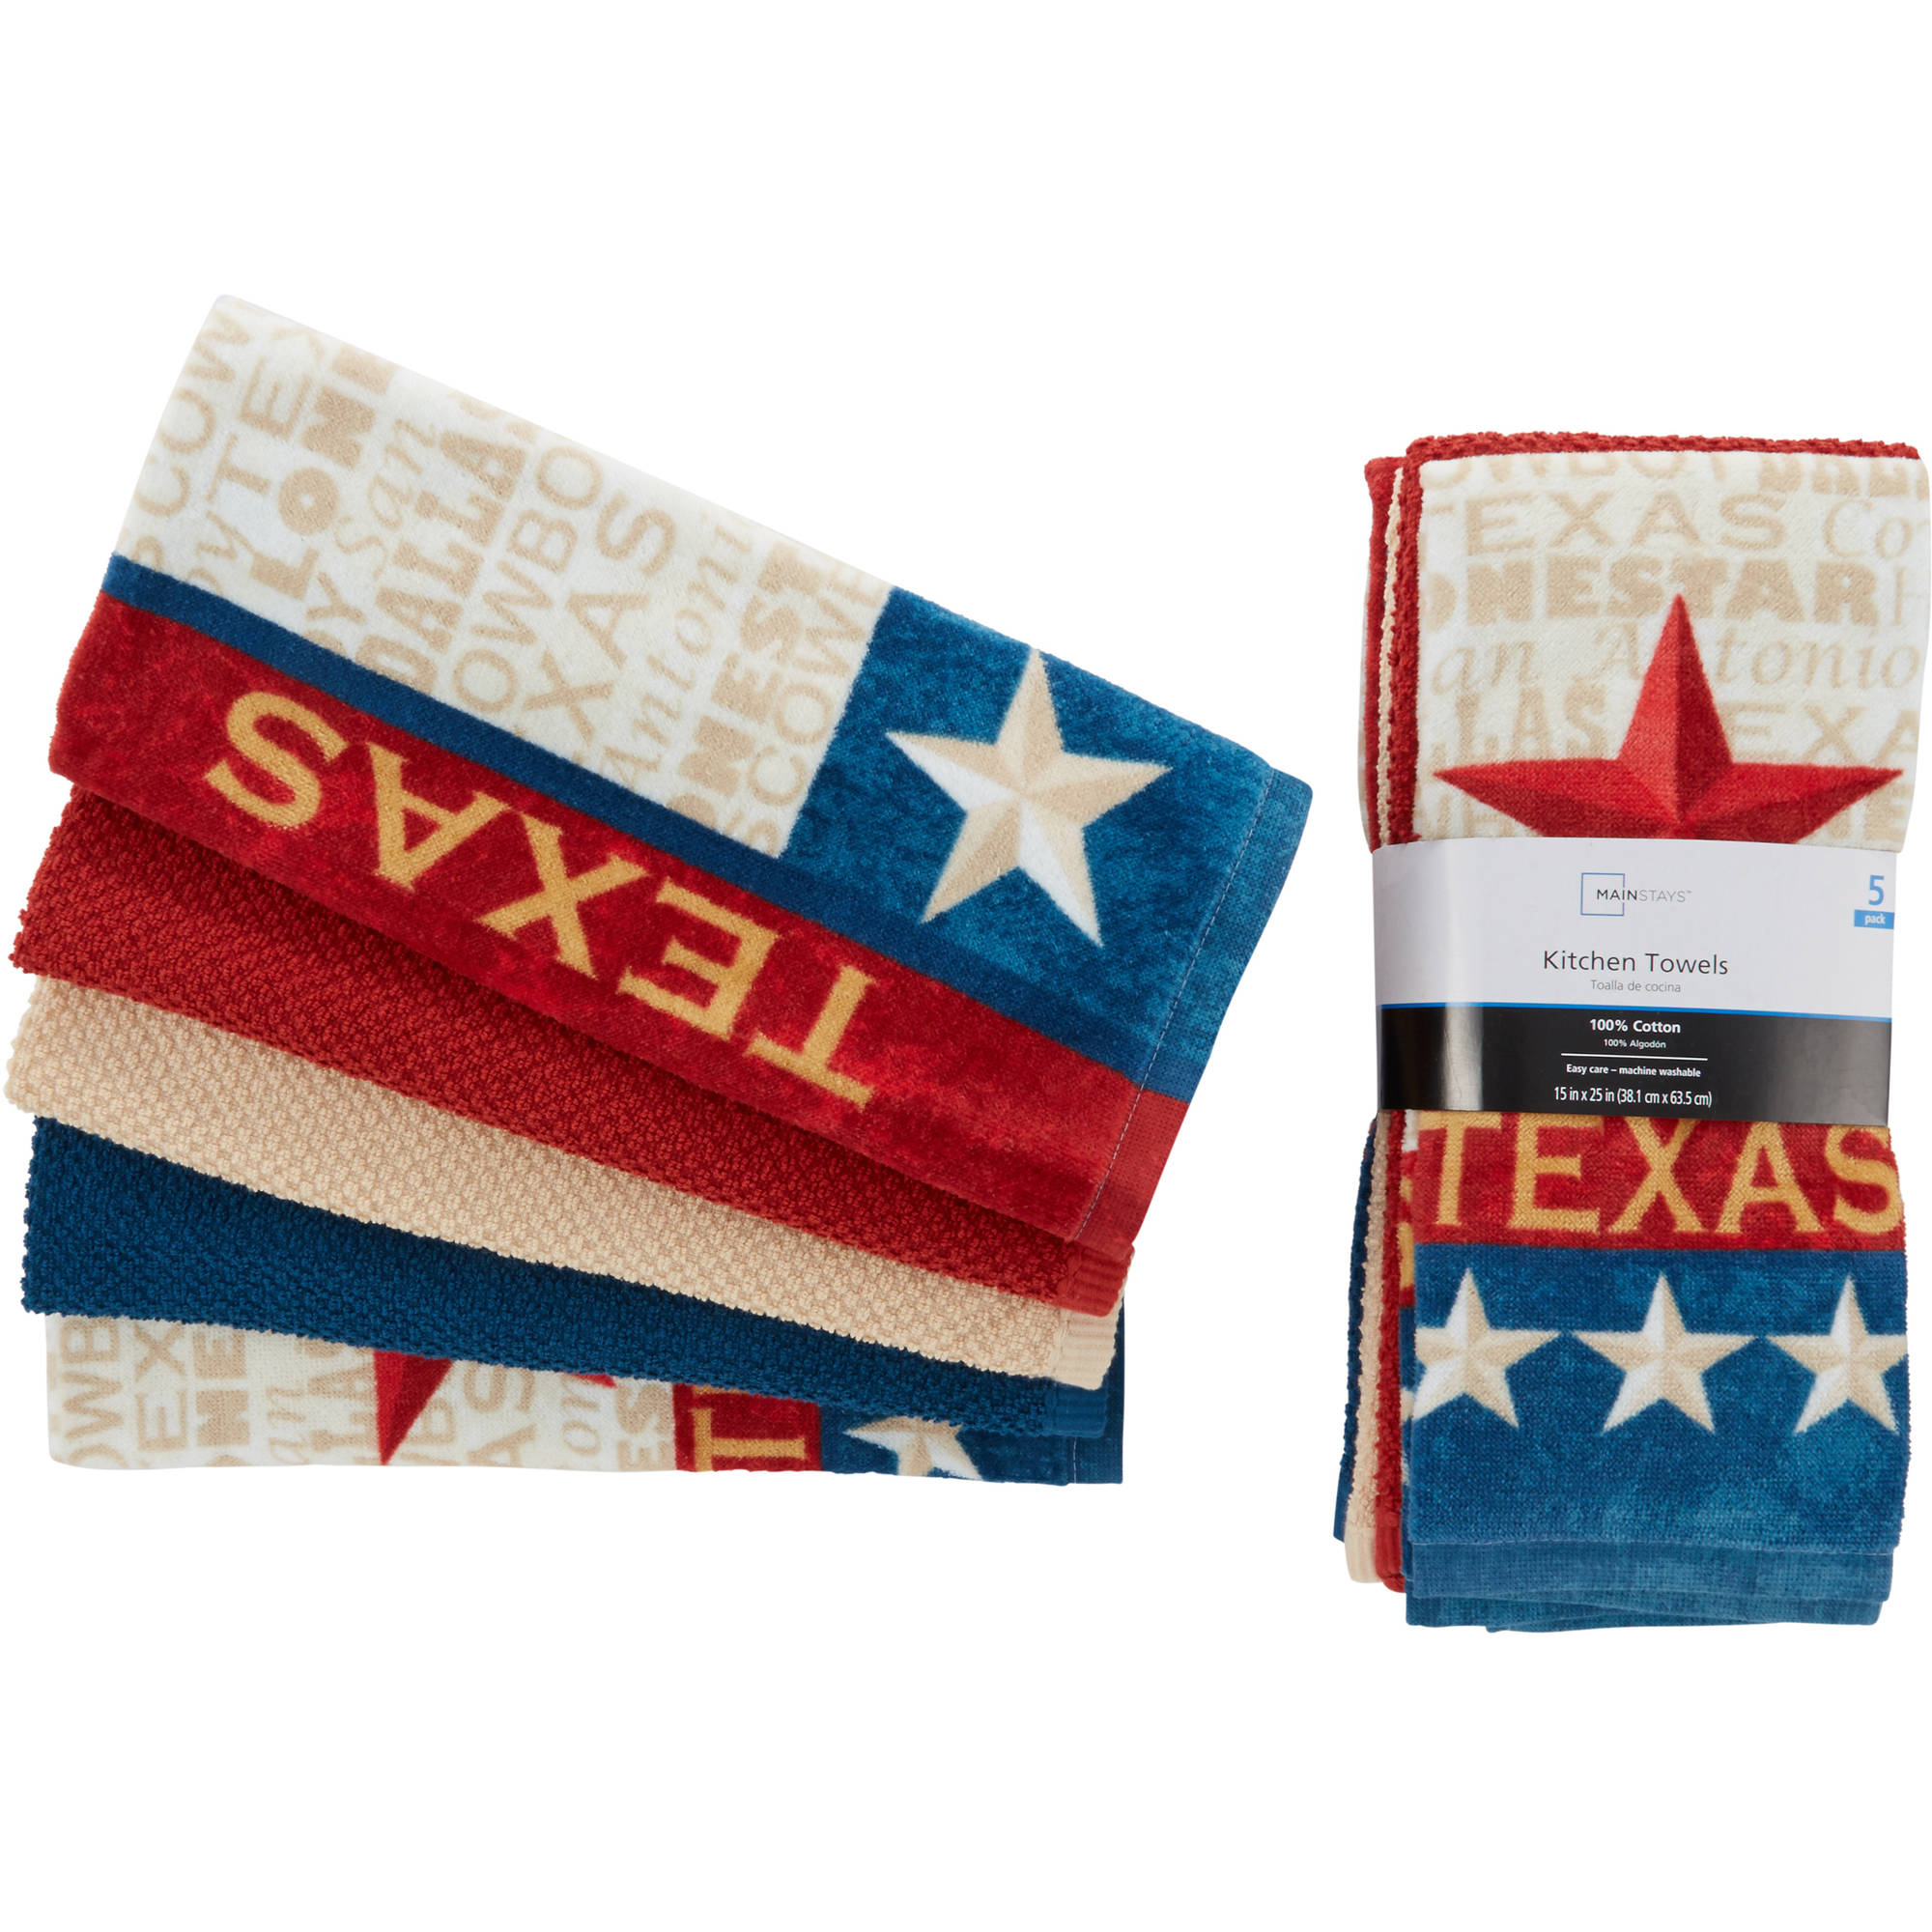 Mainstays 5-Piece Texas Kitchen Towel Set